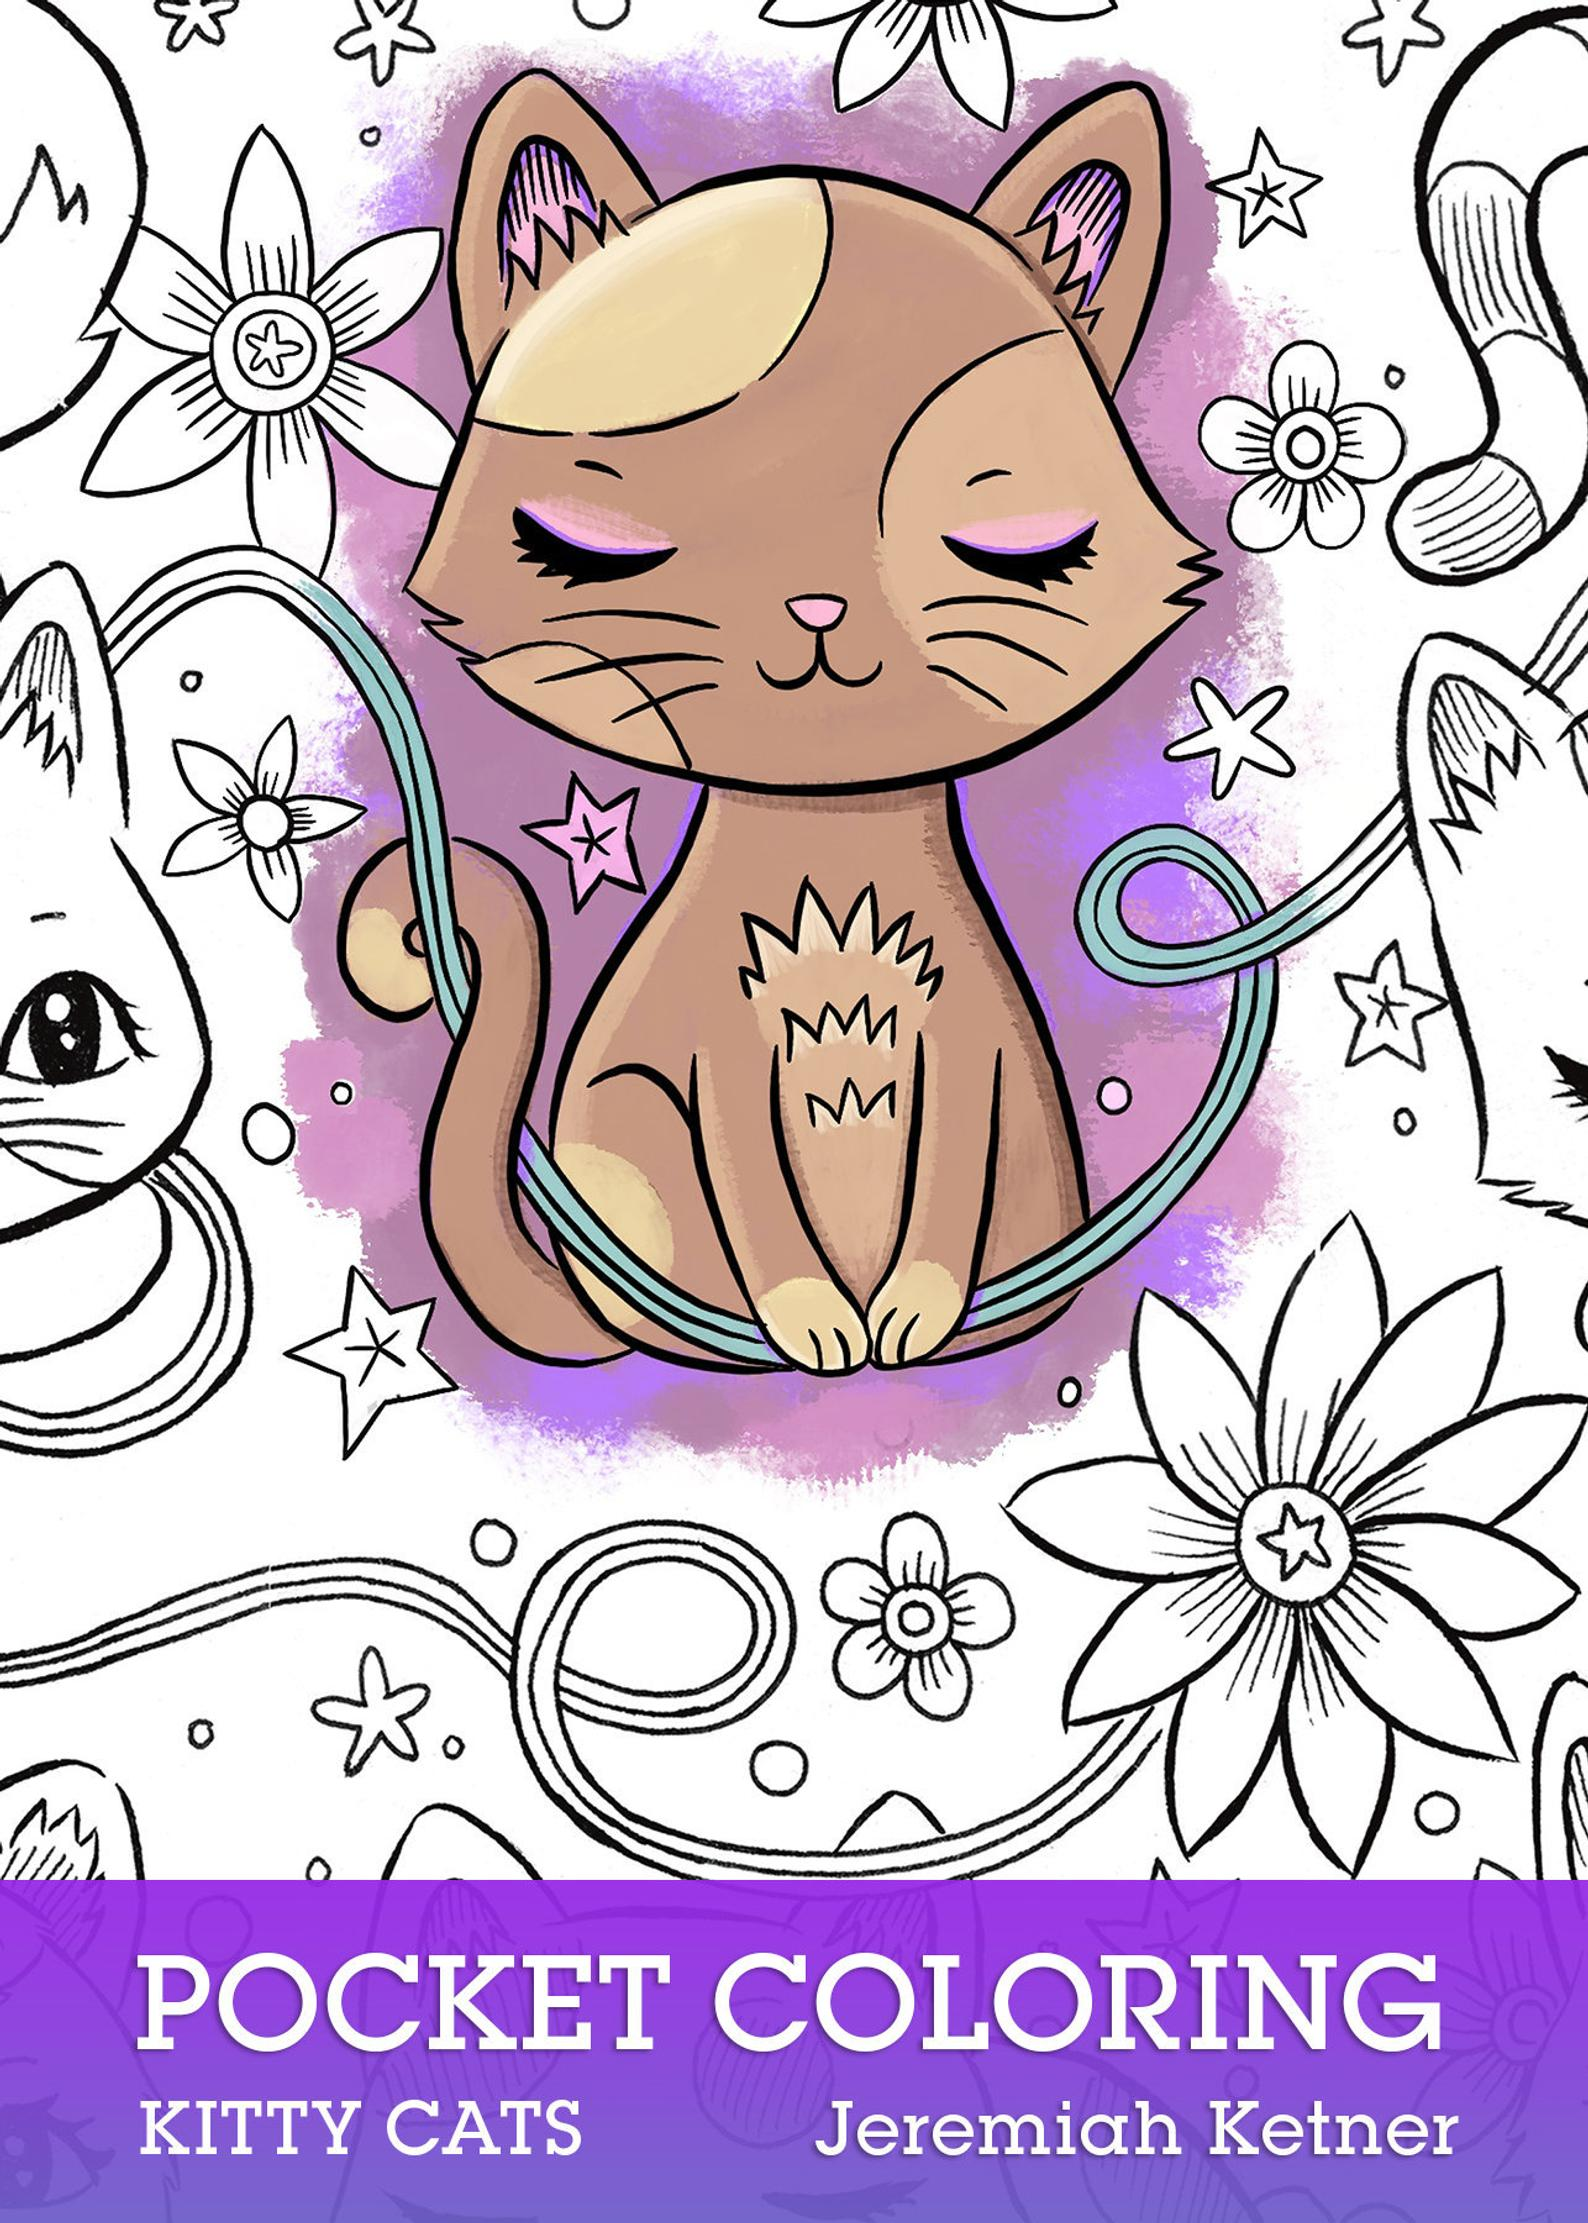 Kitty Cats Pocket Coloring Book